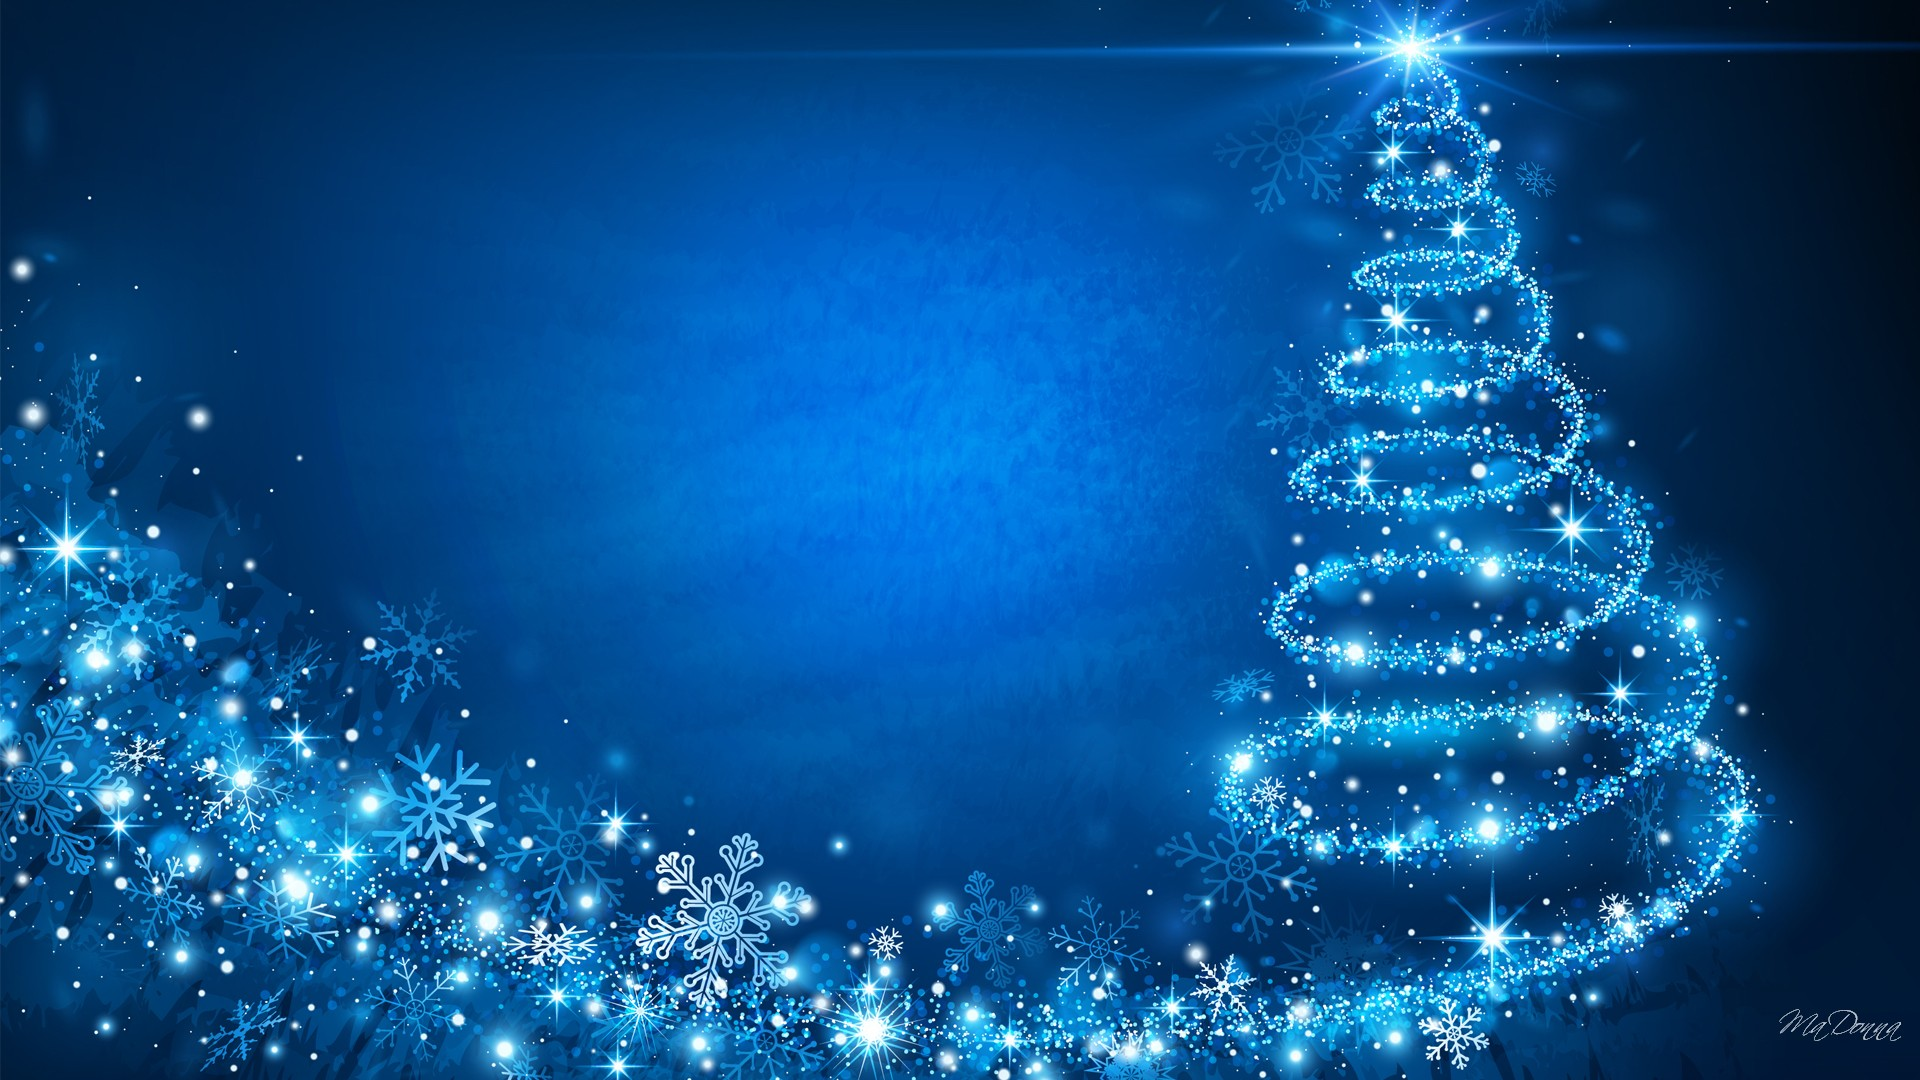 Blue Christmas Background HD Wallpaper, Background Images